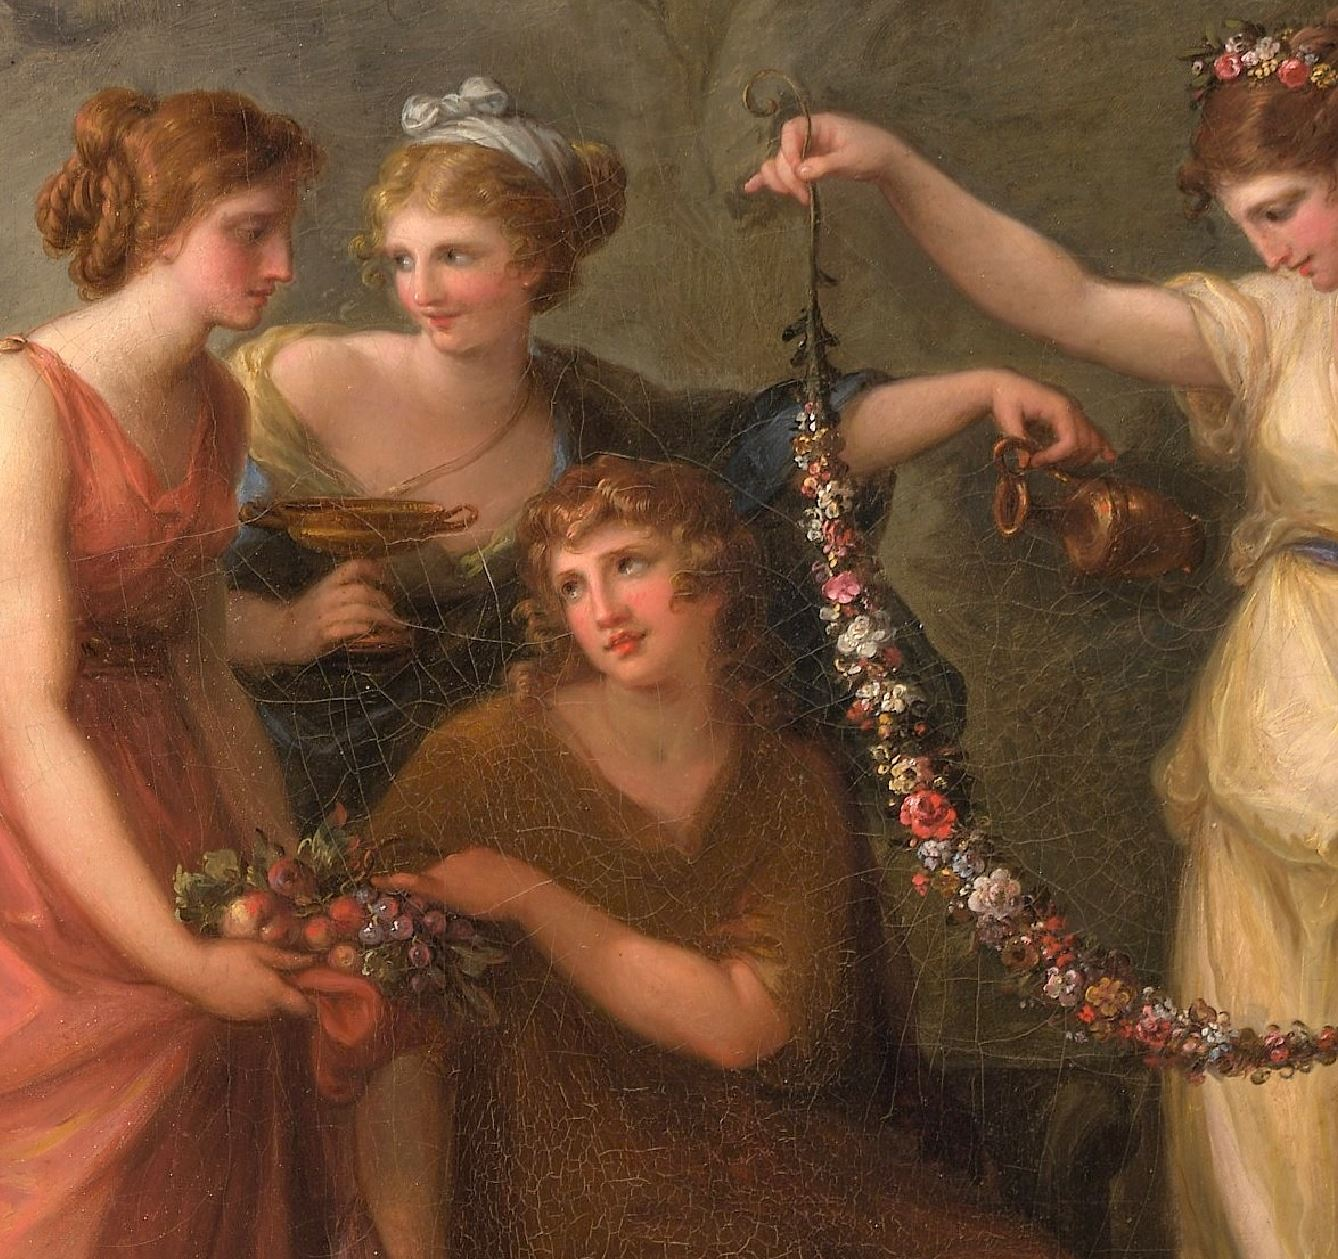 Angelica Kauffmann 1782 Telemachus and the Nymphs of Calypso MET detail Telemaque